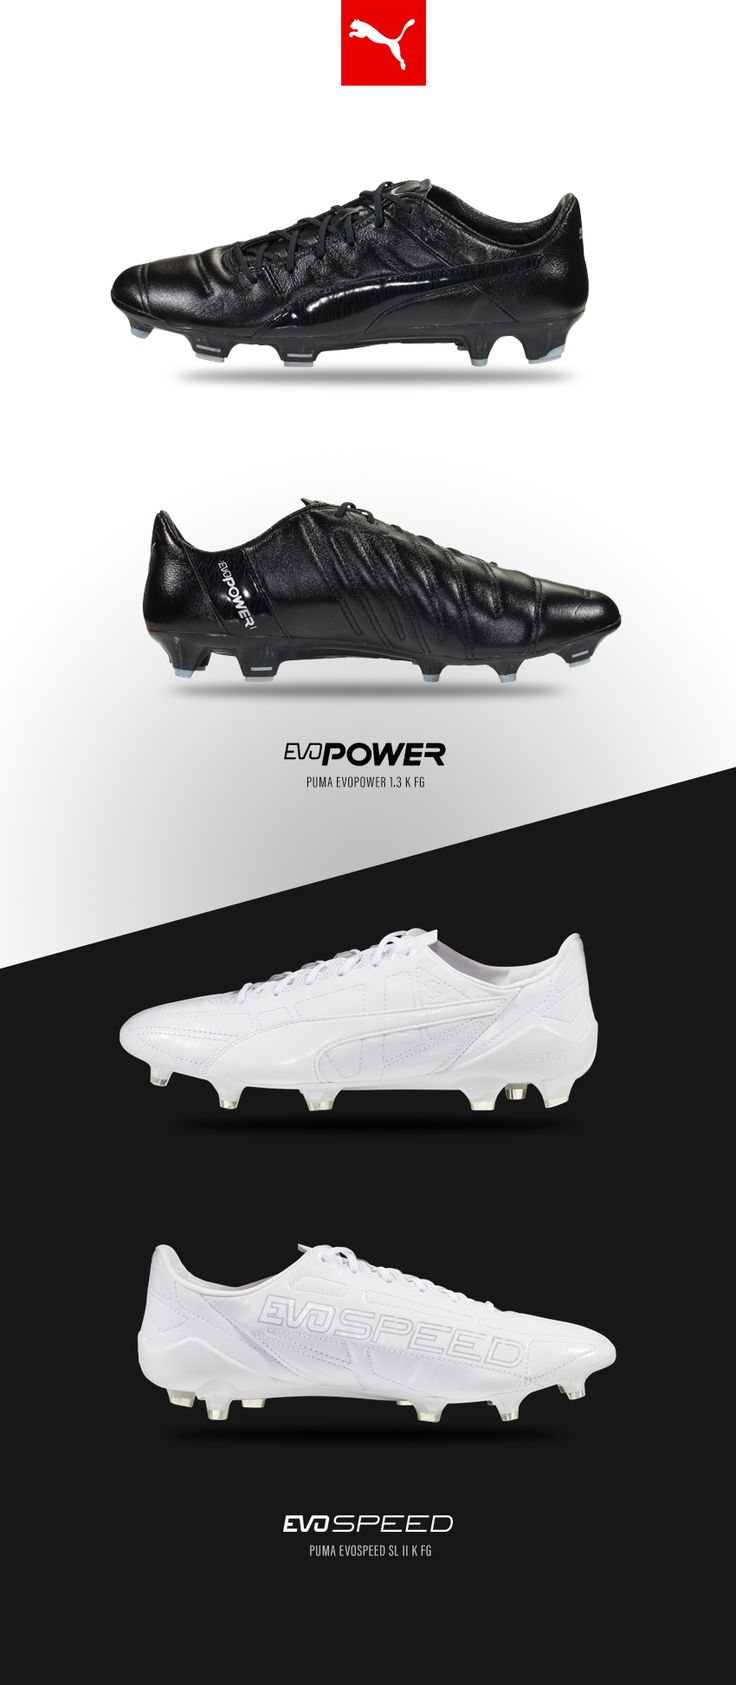 The all new Puma evoPower and evoSpeed. The evoPOWER 1.3 K FG - is  engineered